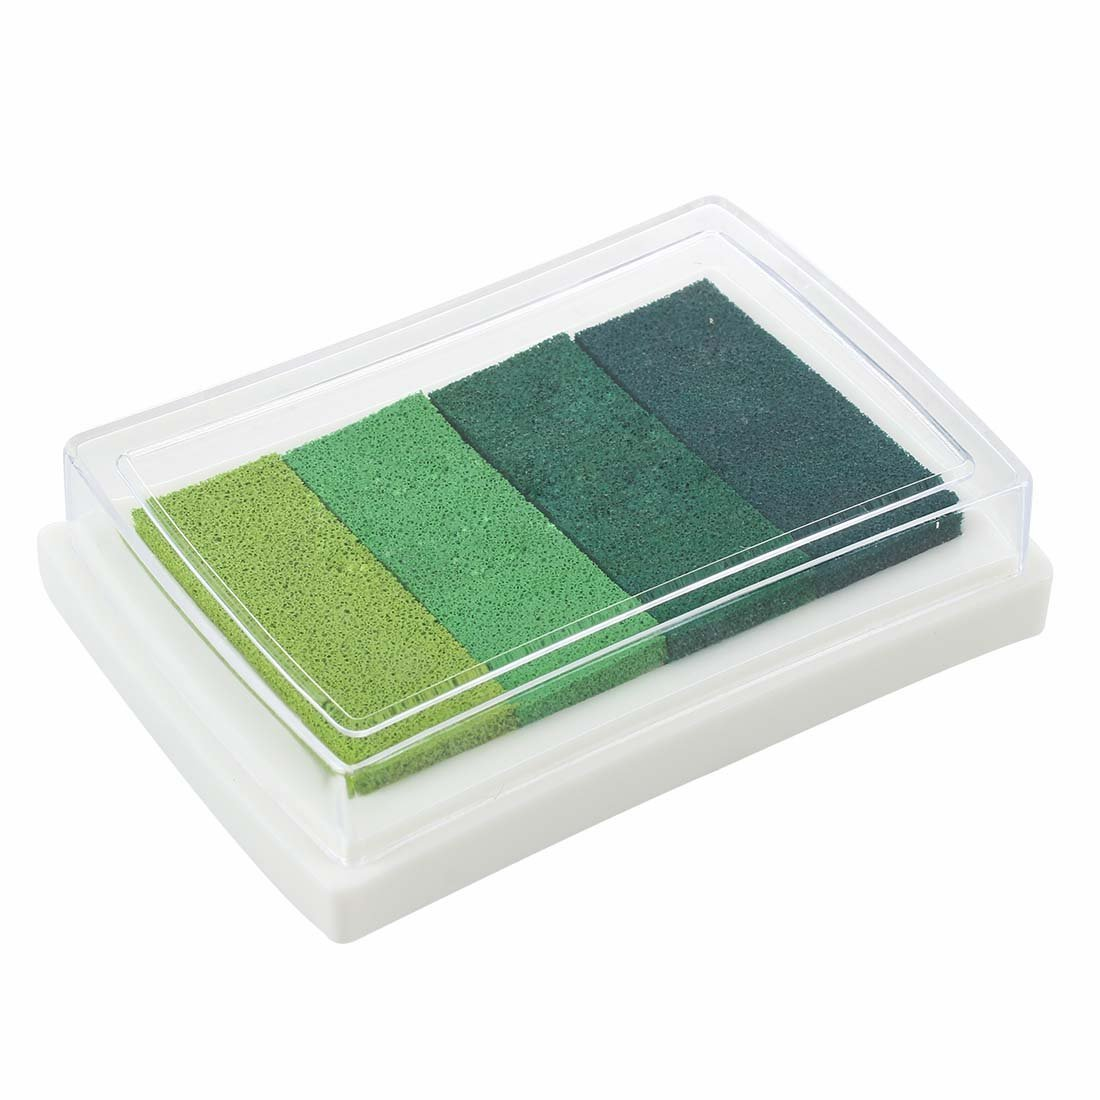 Hilai Inkpad Craft Multi Gradient Green 4 x Colors Ink Stamp Pad Oil Based